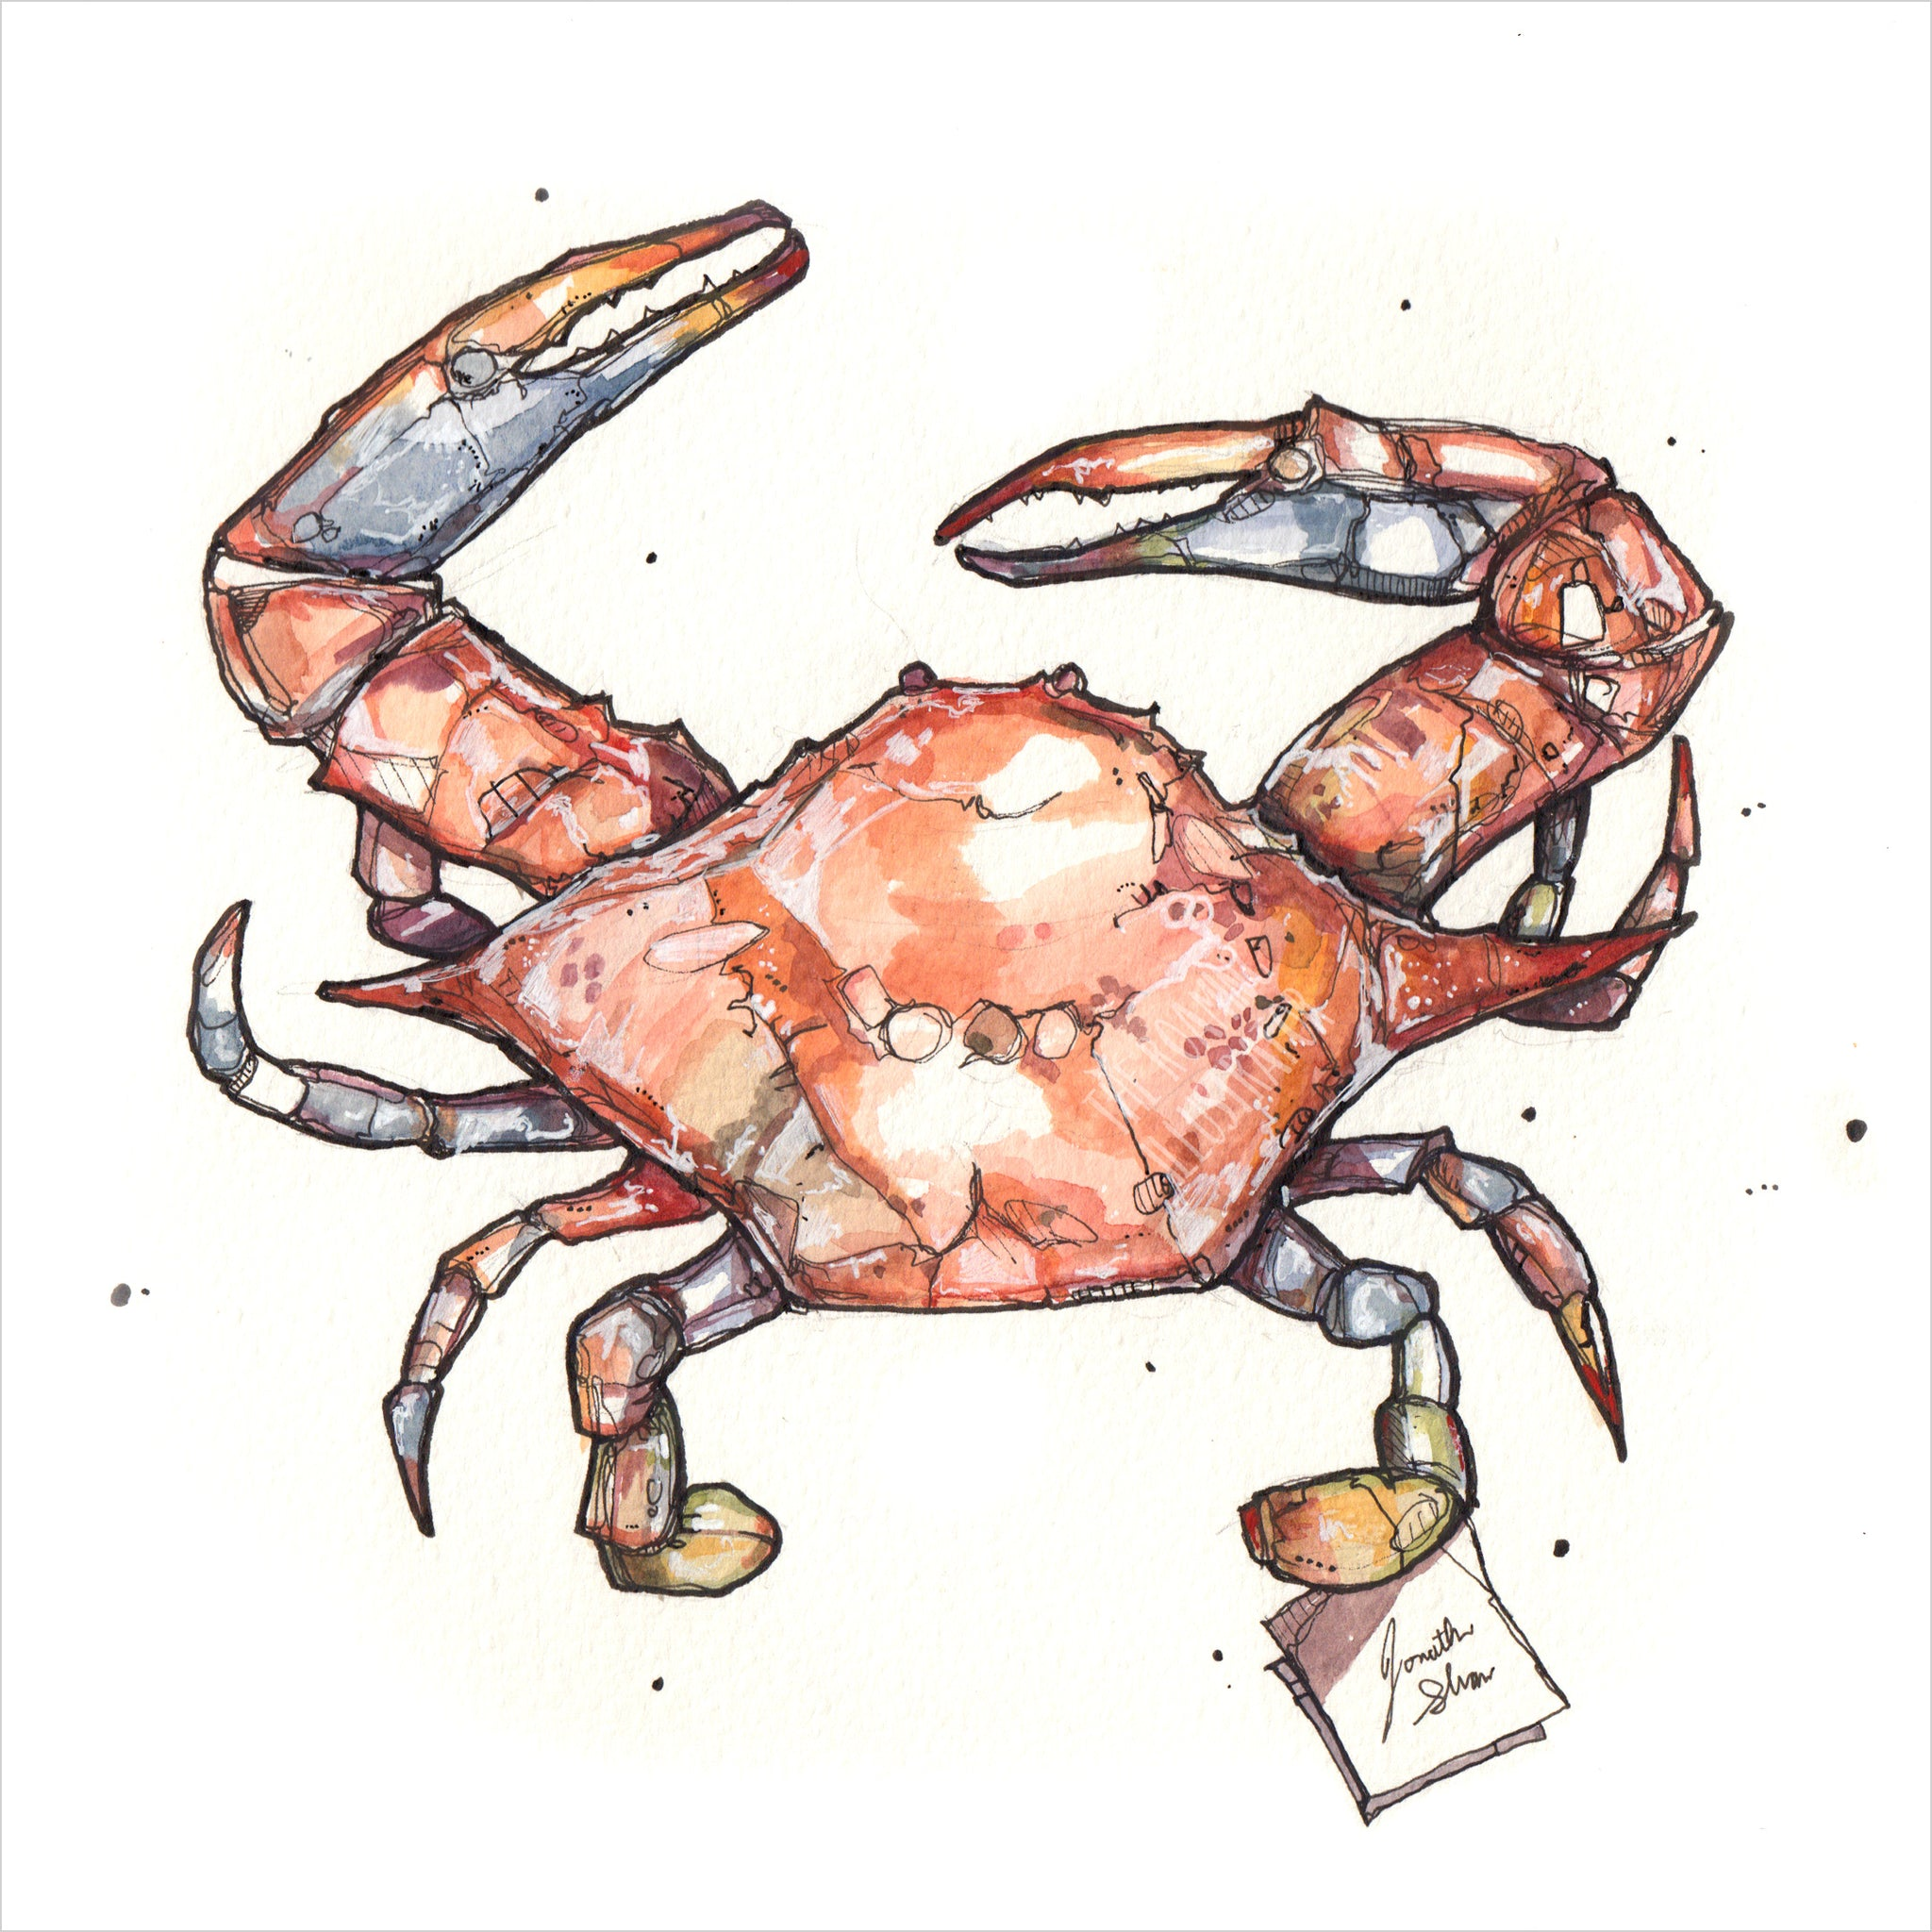 """Red Crab"" - 8x10 Reproduction print"